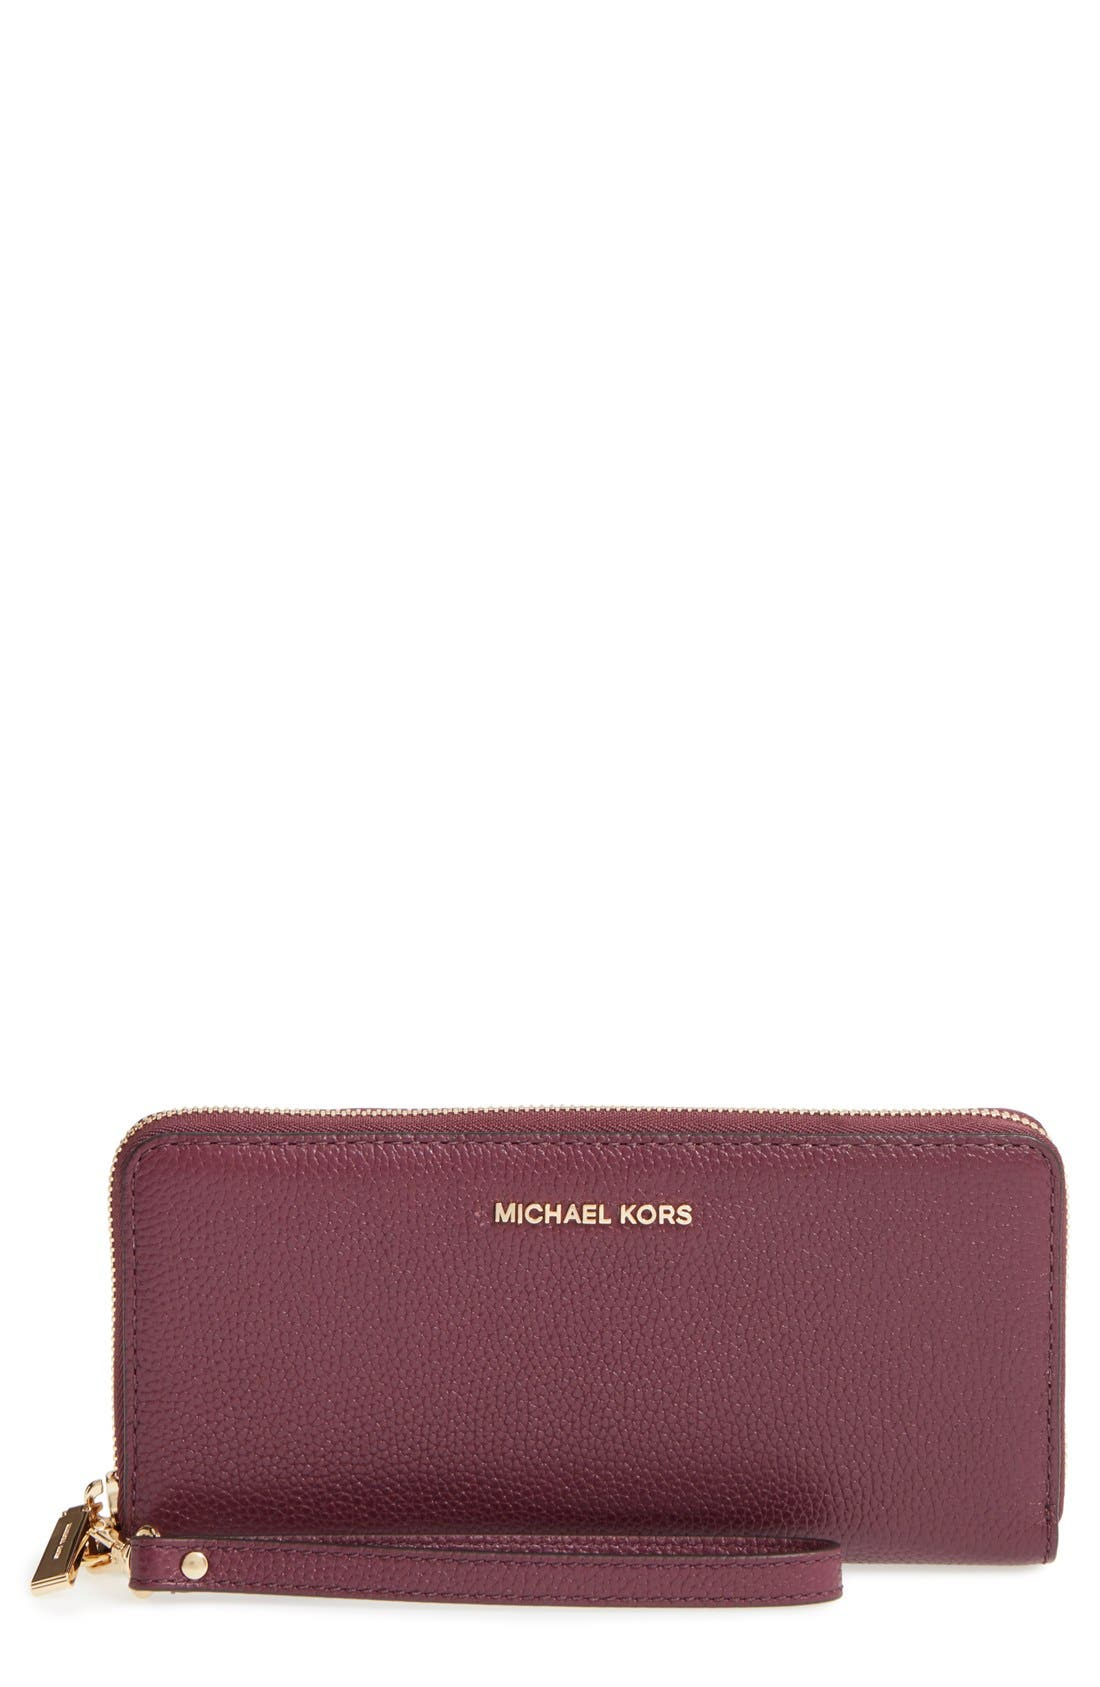 'Mercer' Leather Continental Wallet,                             Main thumbnail 7, color,